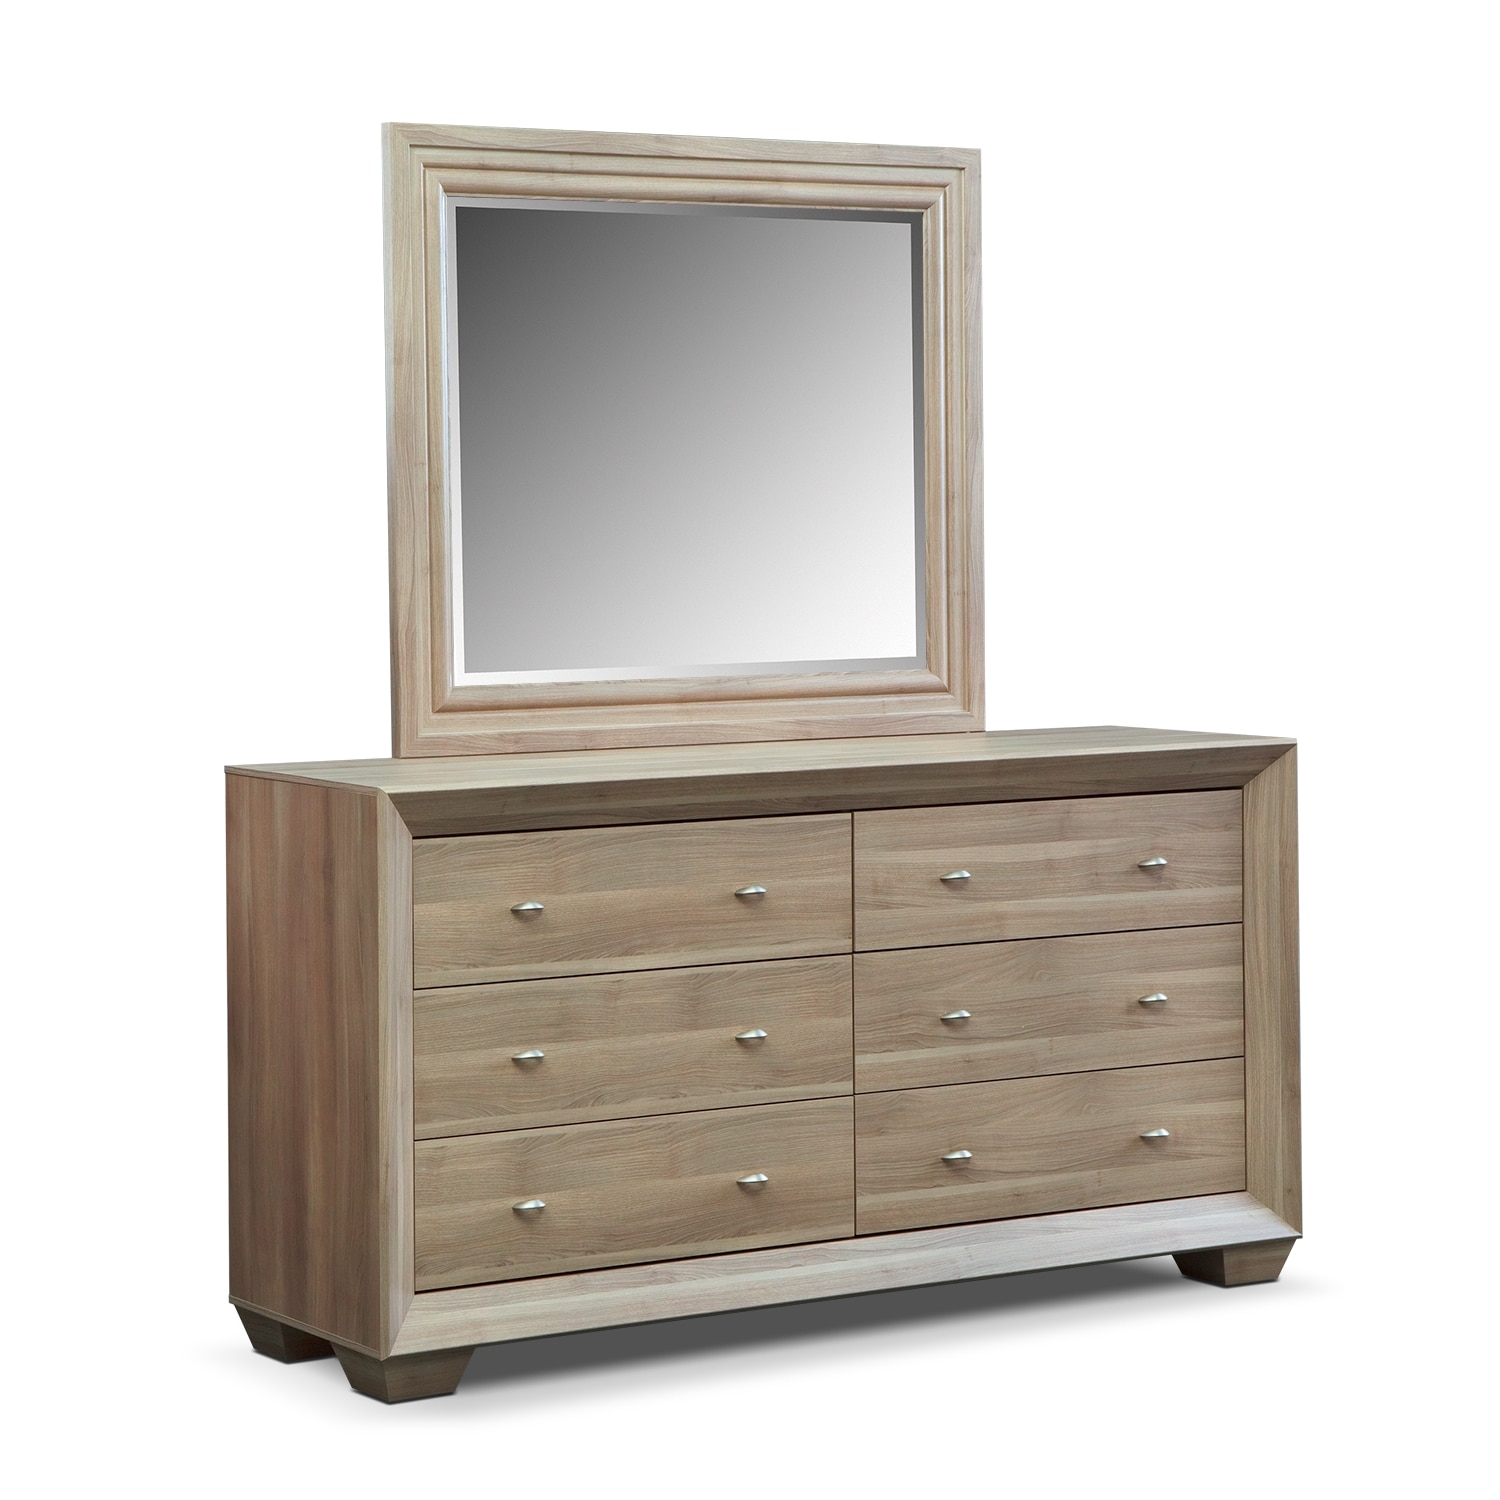 Bedroom Mirrors : Siena Bedroom Dresser & Mirror - Value City Furniture